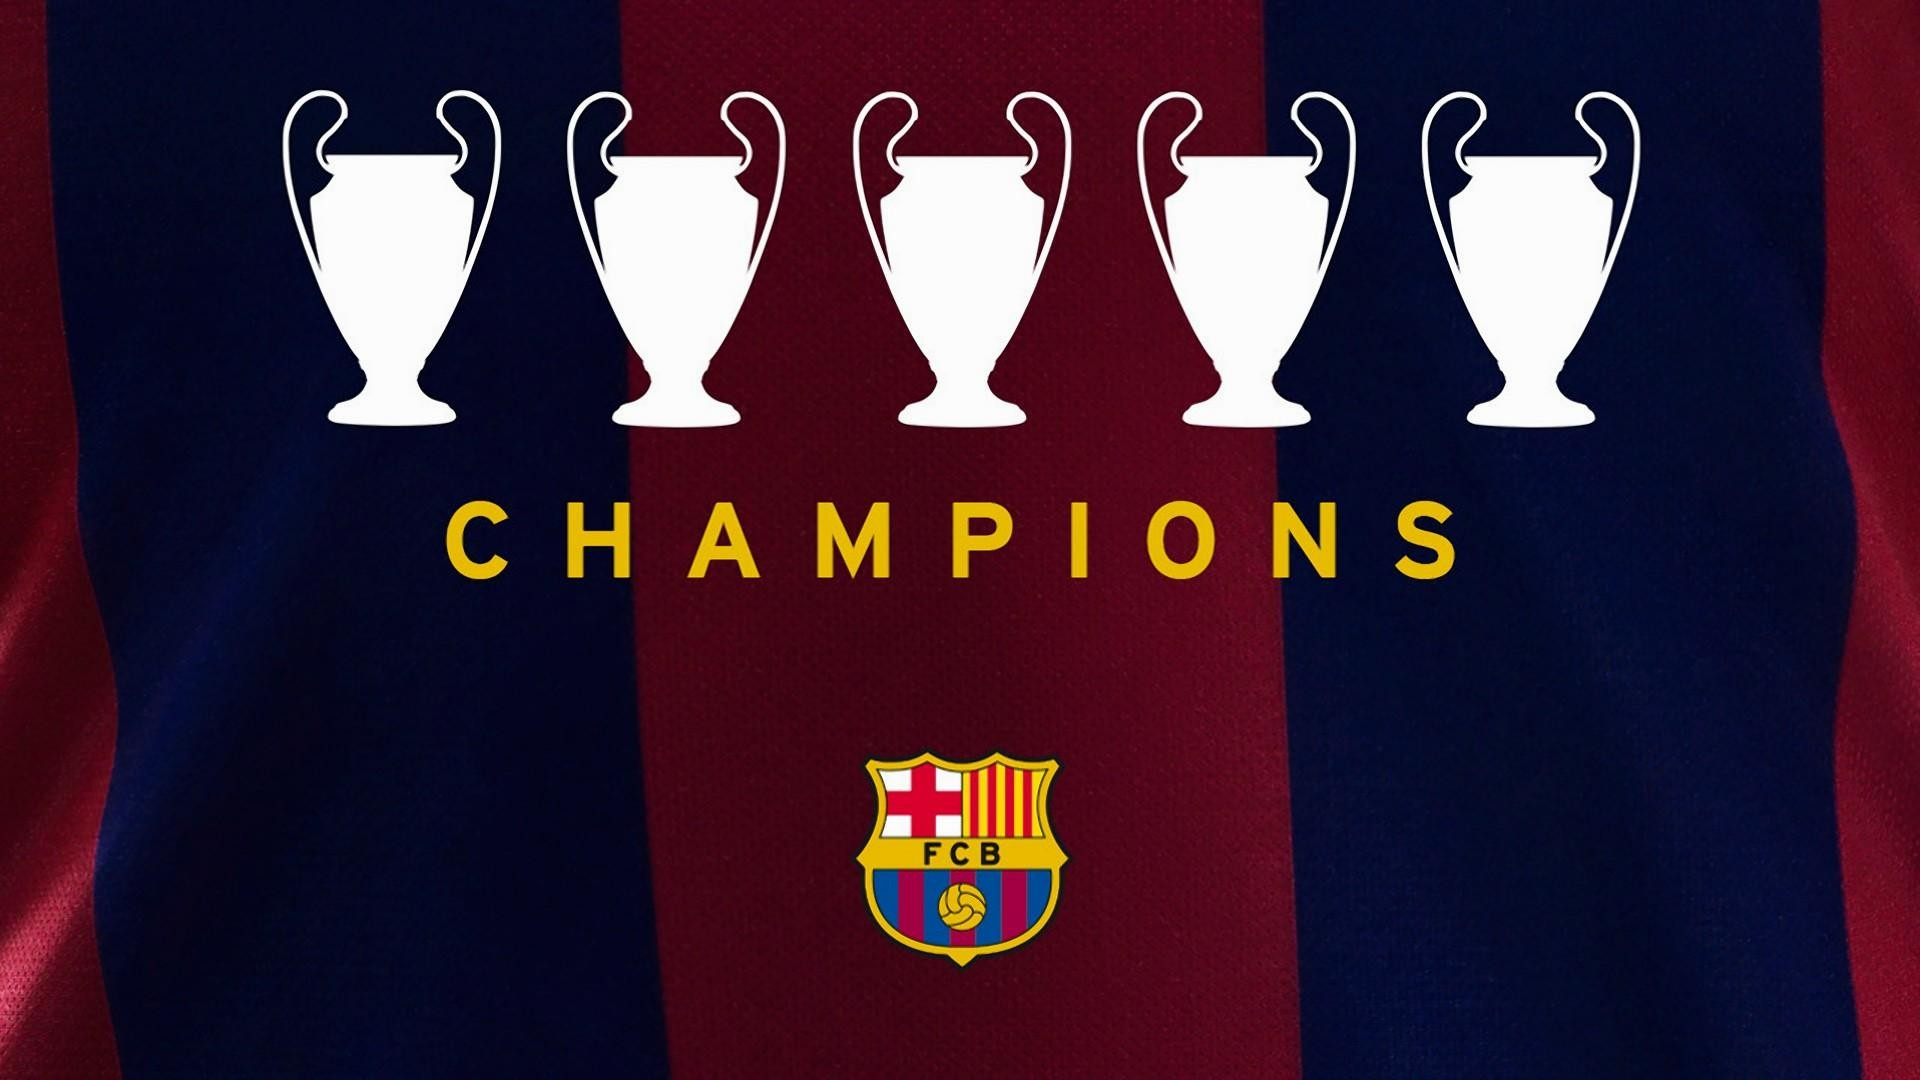 Download-Barcelona-Backgrounds-Free